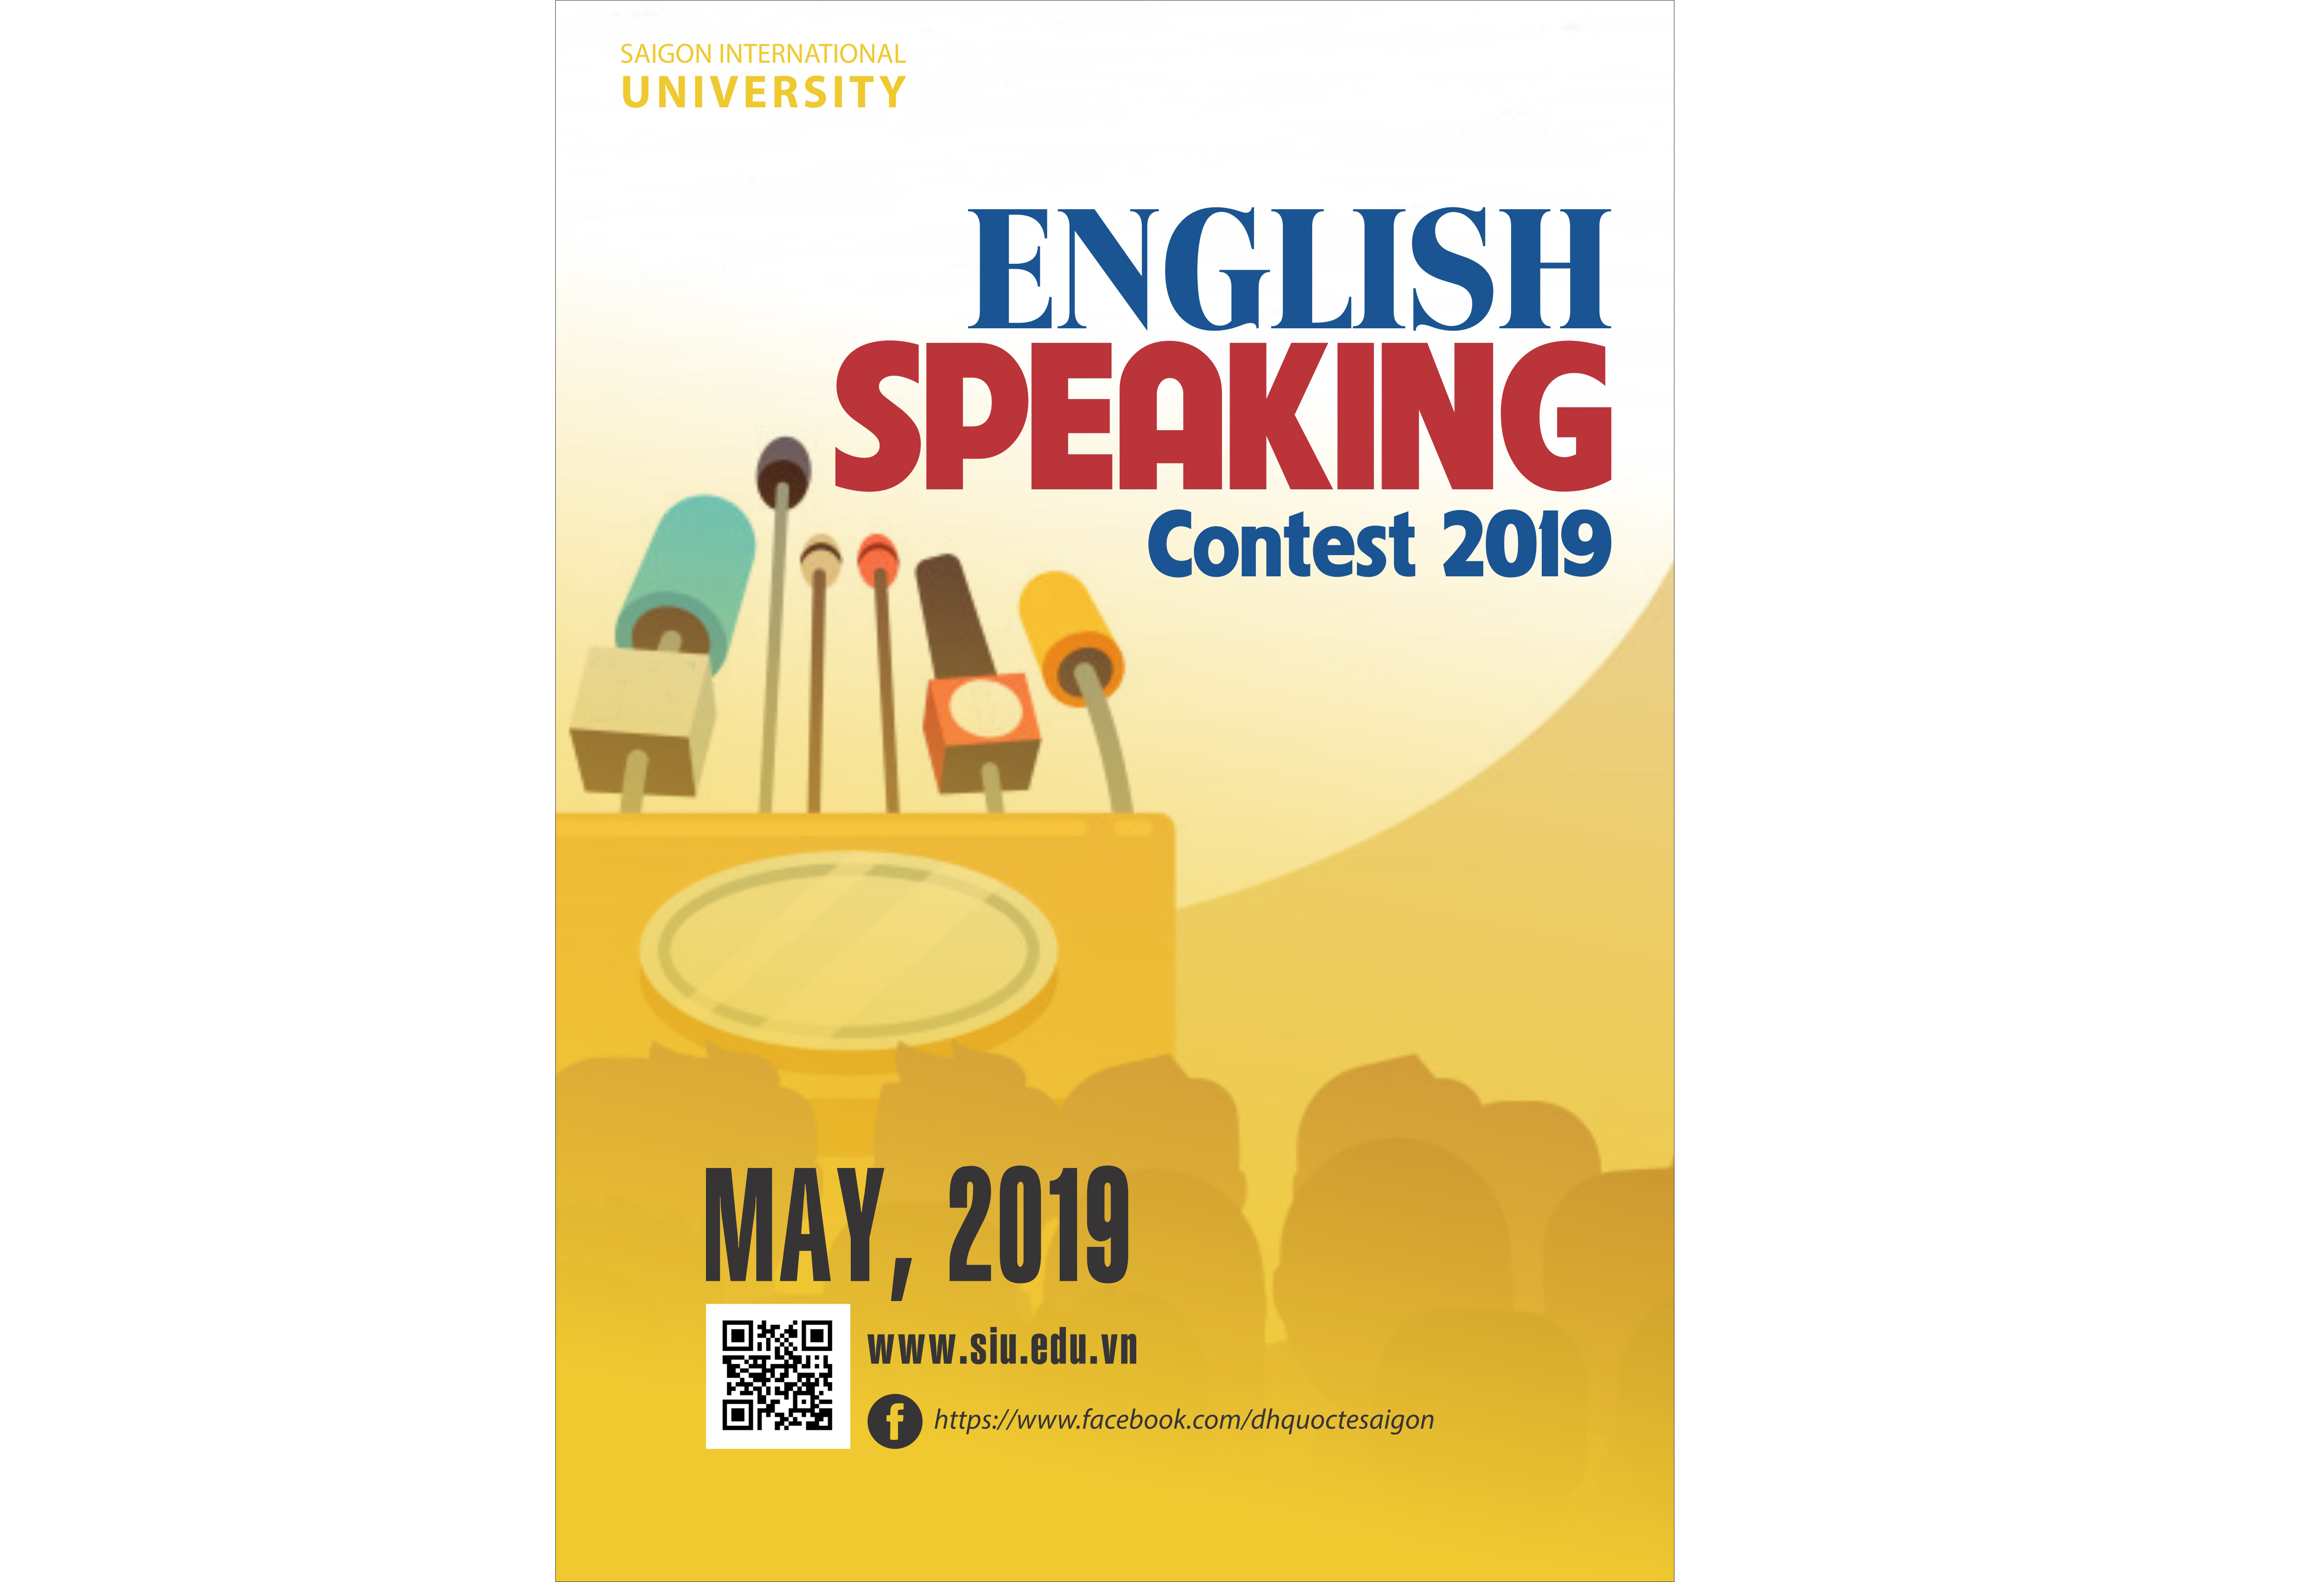 English speaking contest 2019